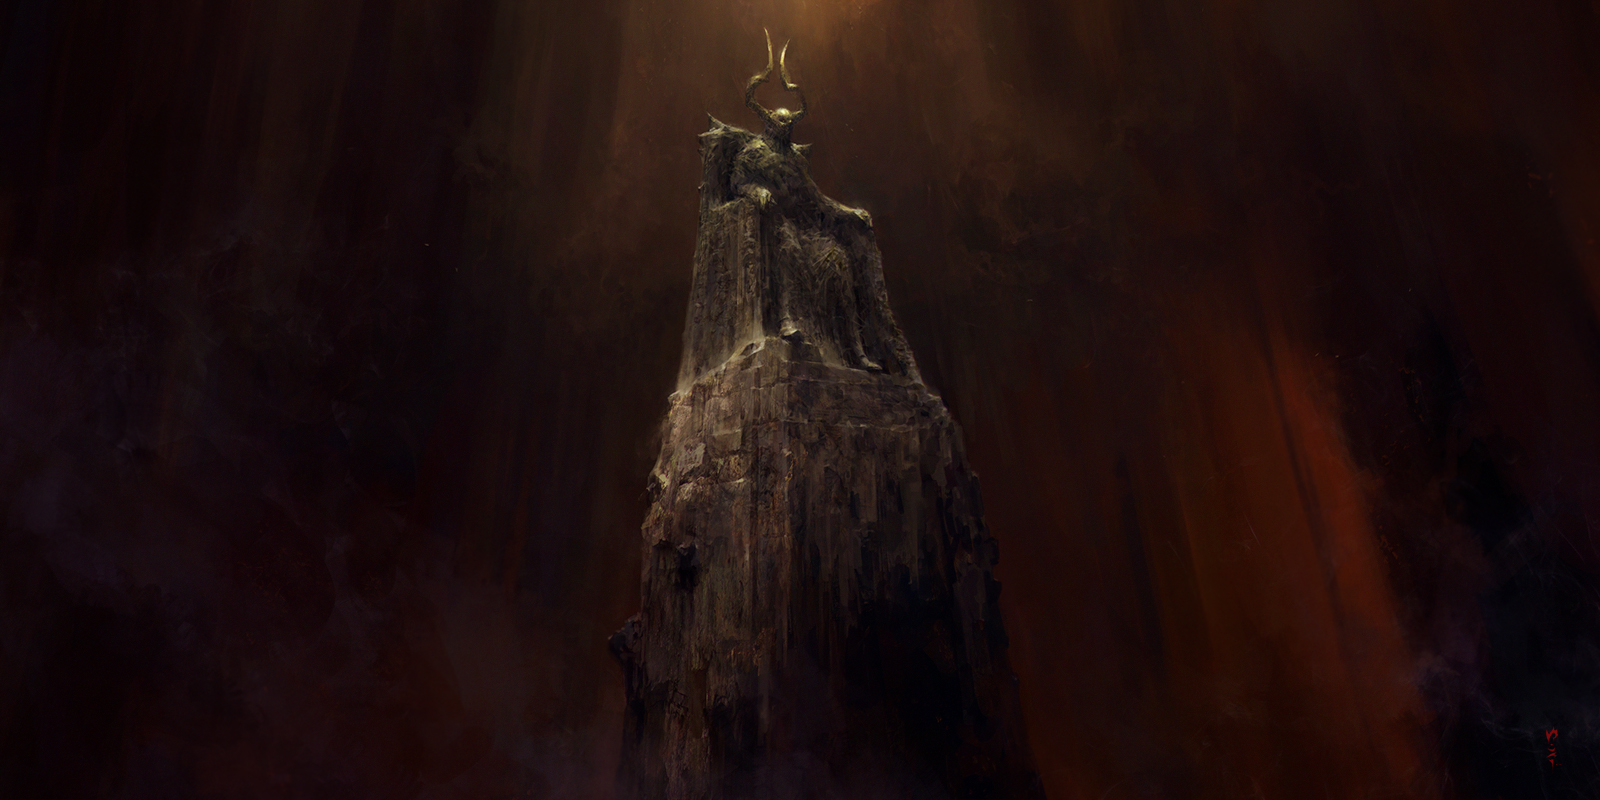 The Watcher by ChrisCold